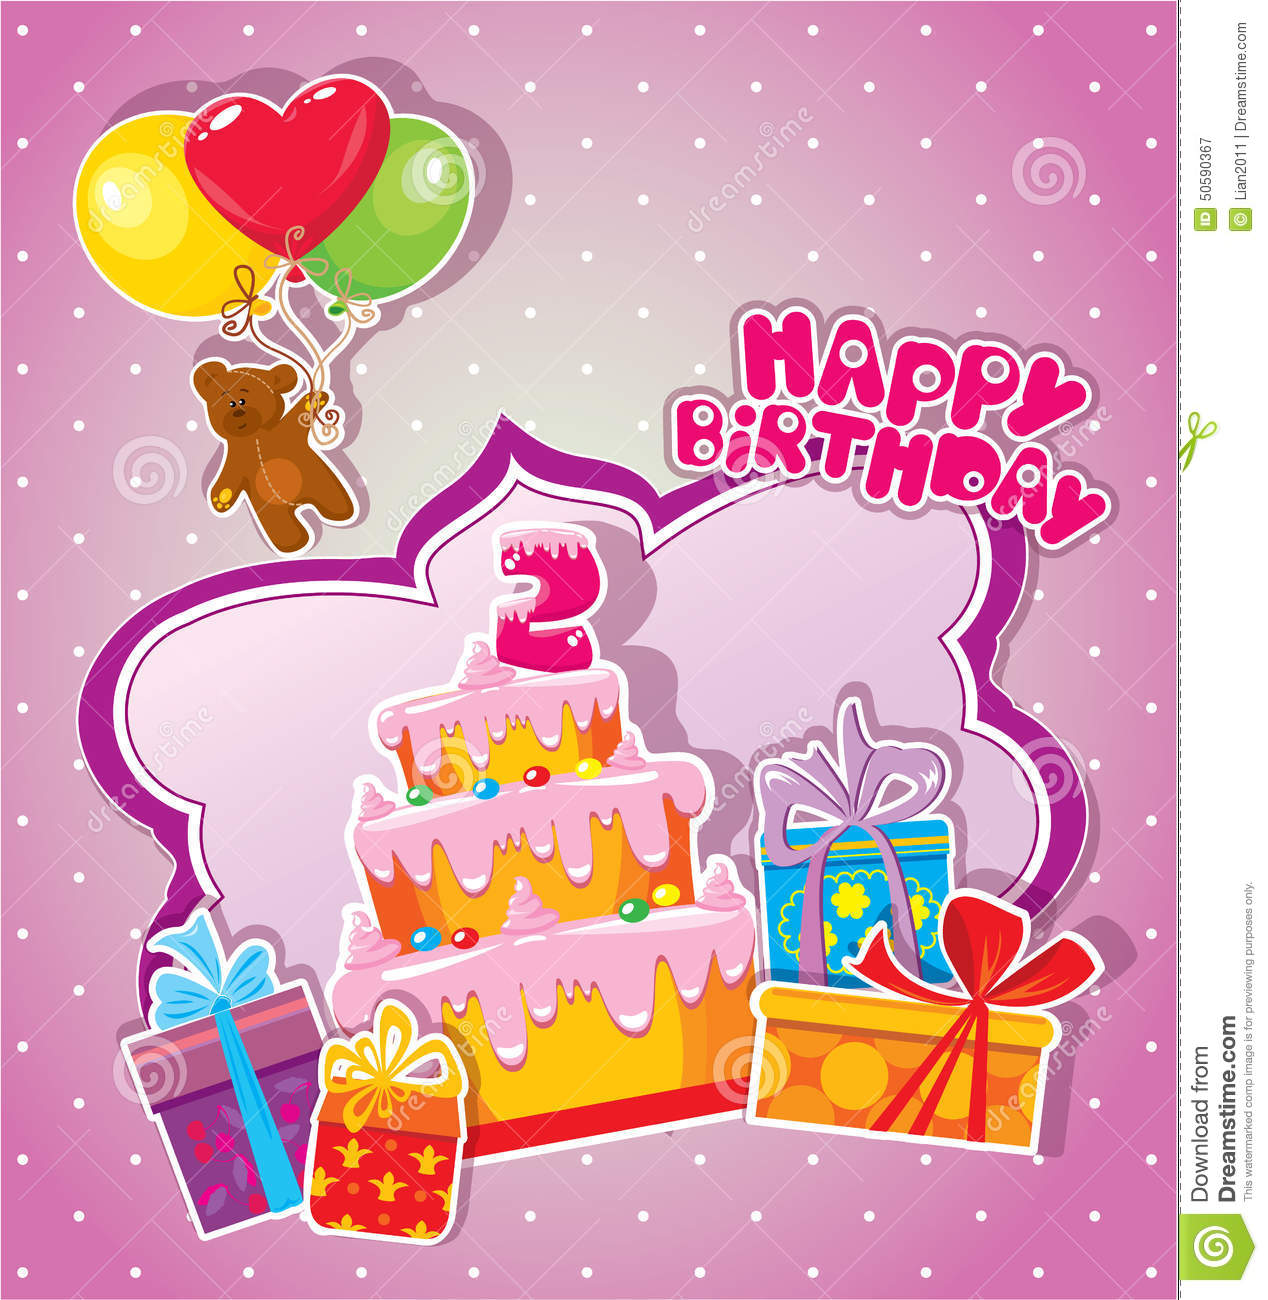 Baby Birthday Card With Teddy Bear, Big Cake And Gift